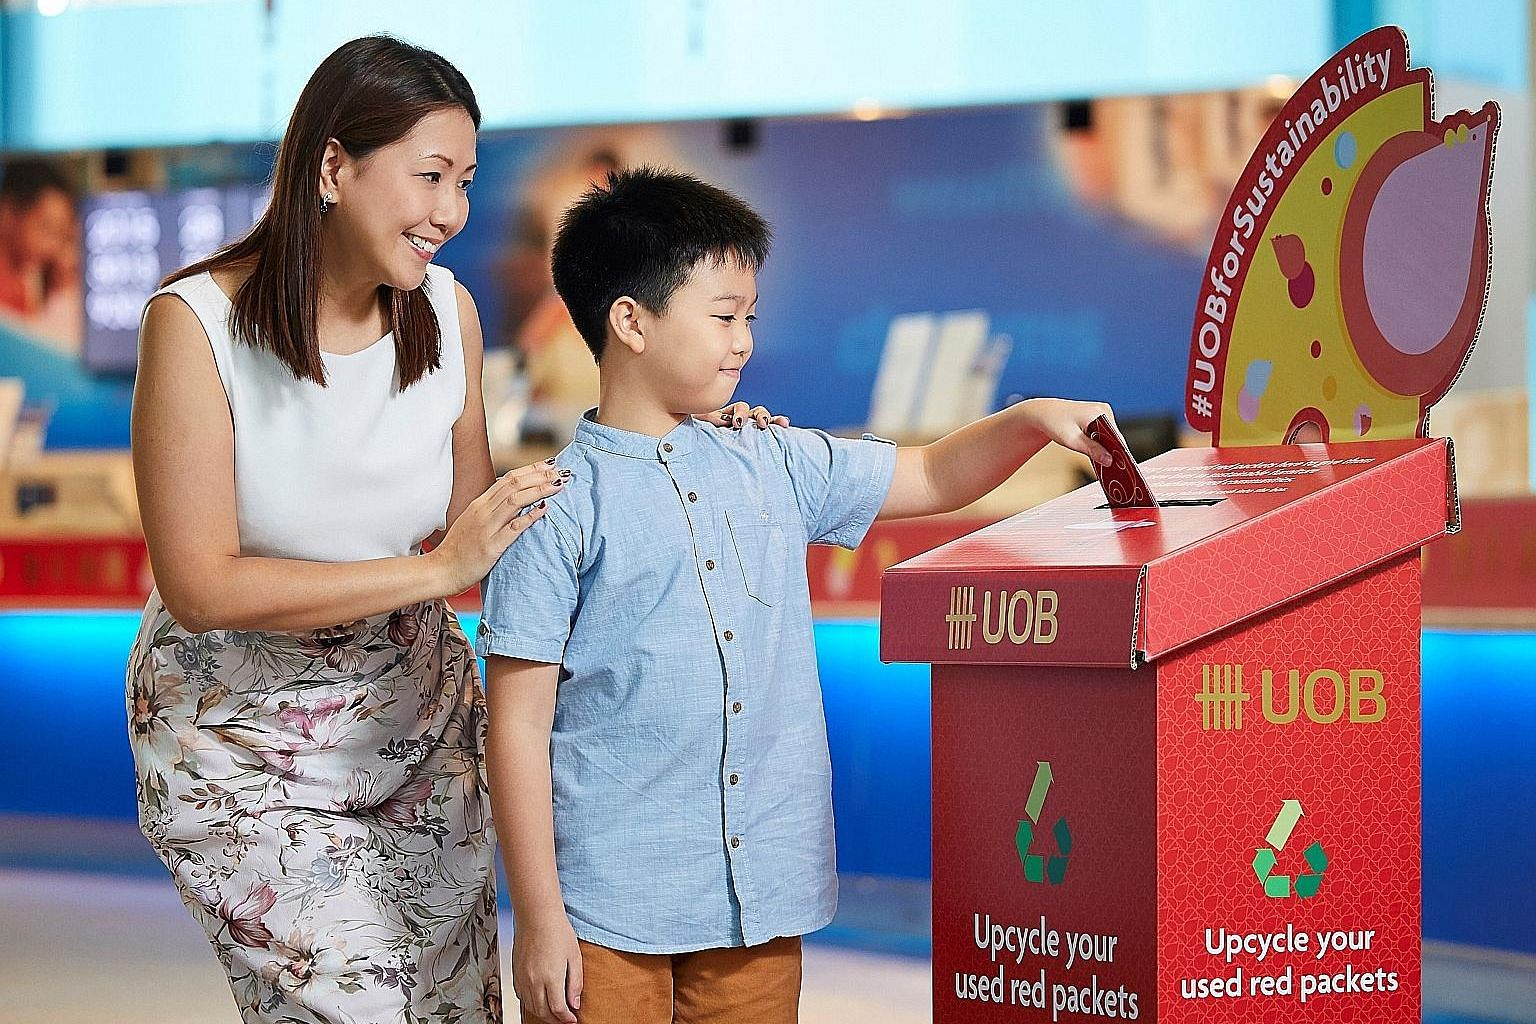 Customers are encouraged to drop their used red packets into recycling boxes from Jan 20 at designated UOB branches.